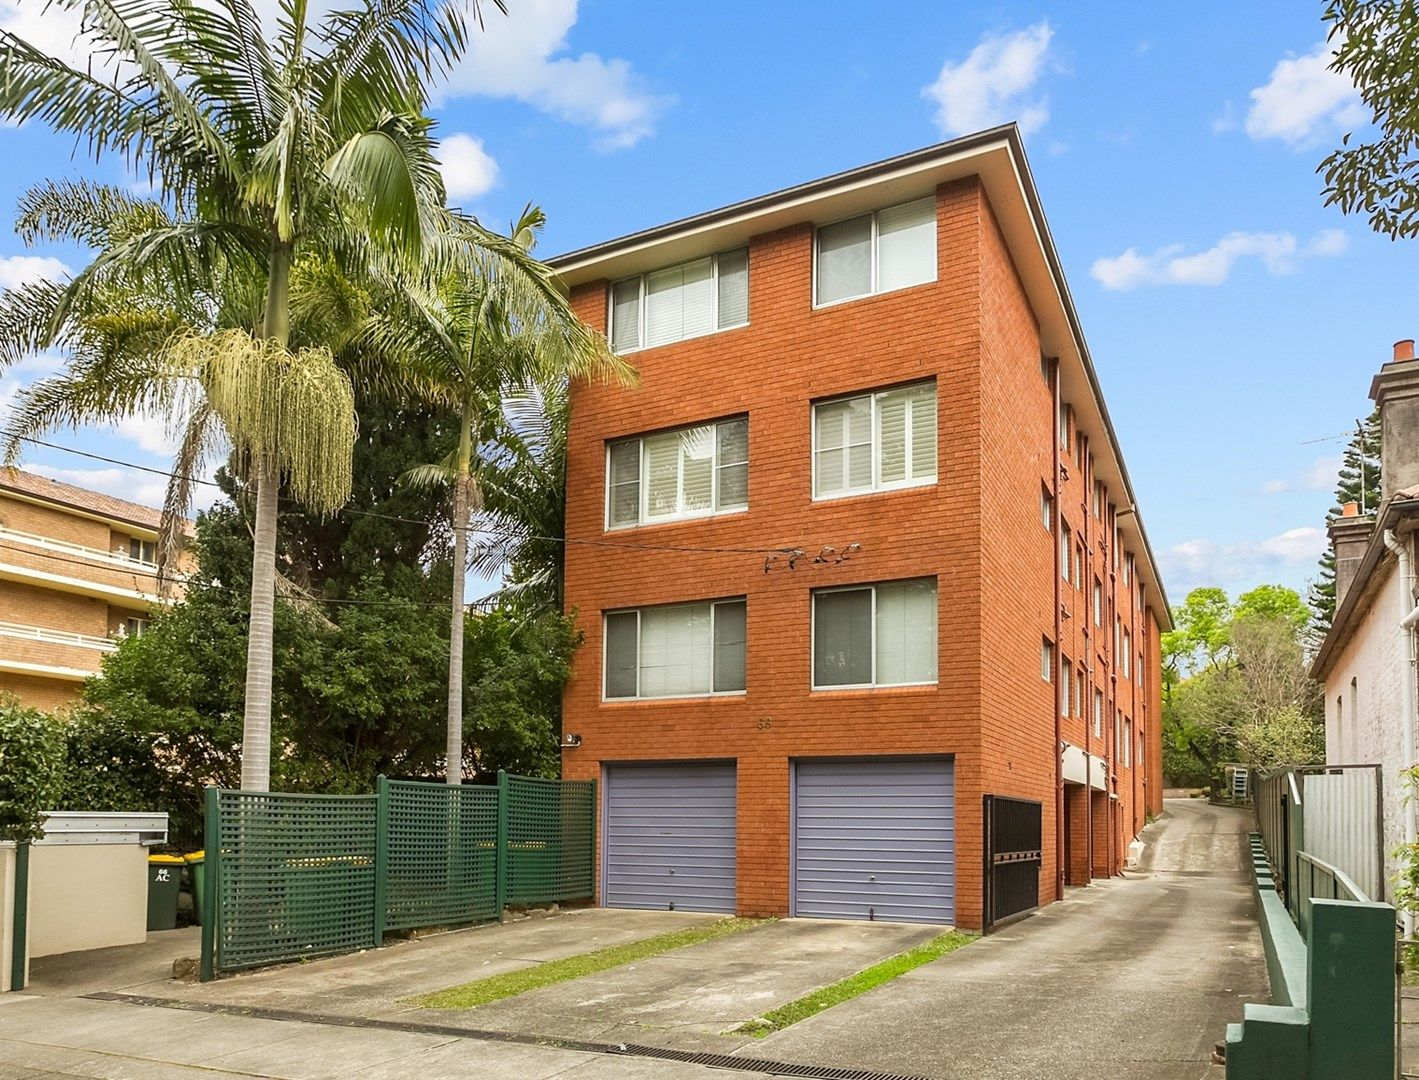 5/66 Kensington Road, Summer Hill NSW 2130, Image 0